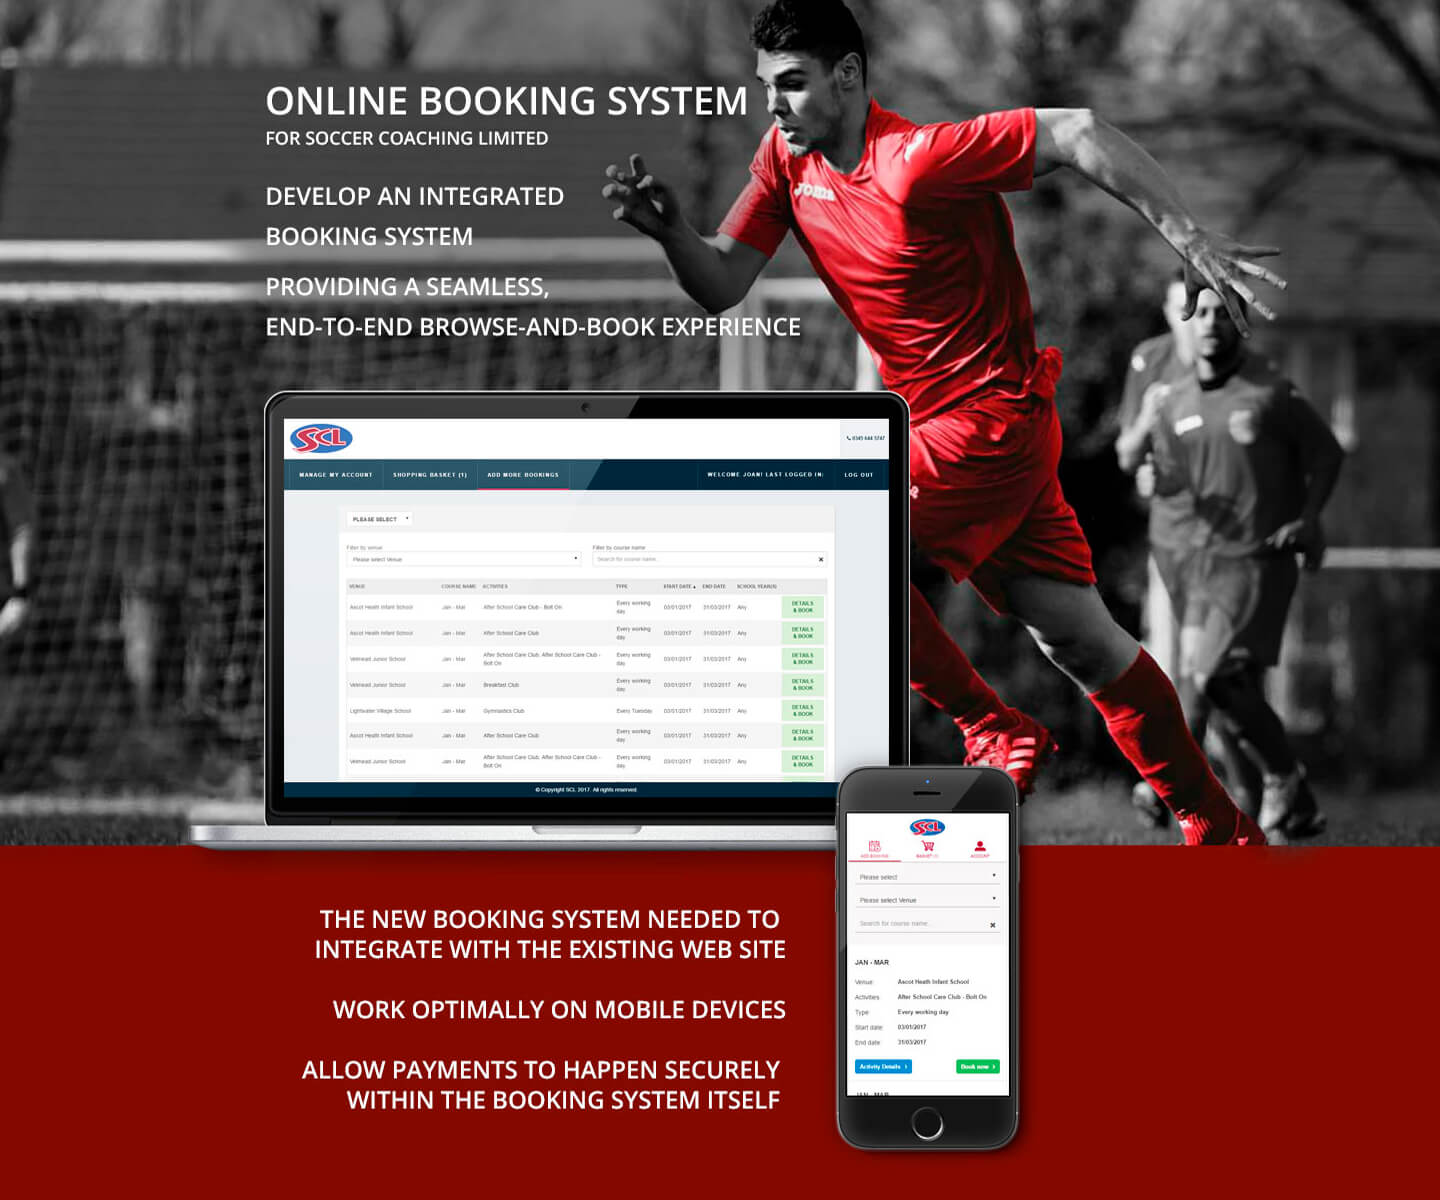 Soccer Coaching Limited (SCL)